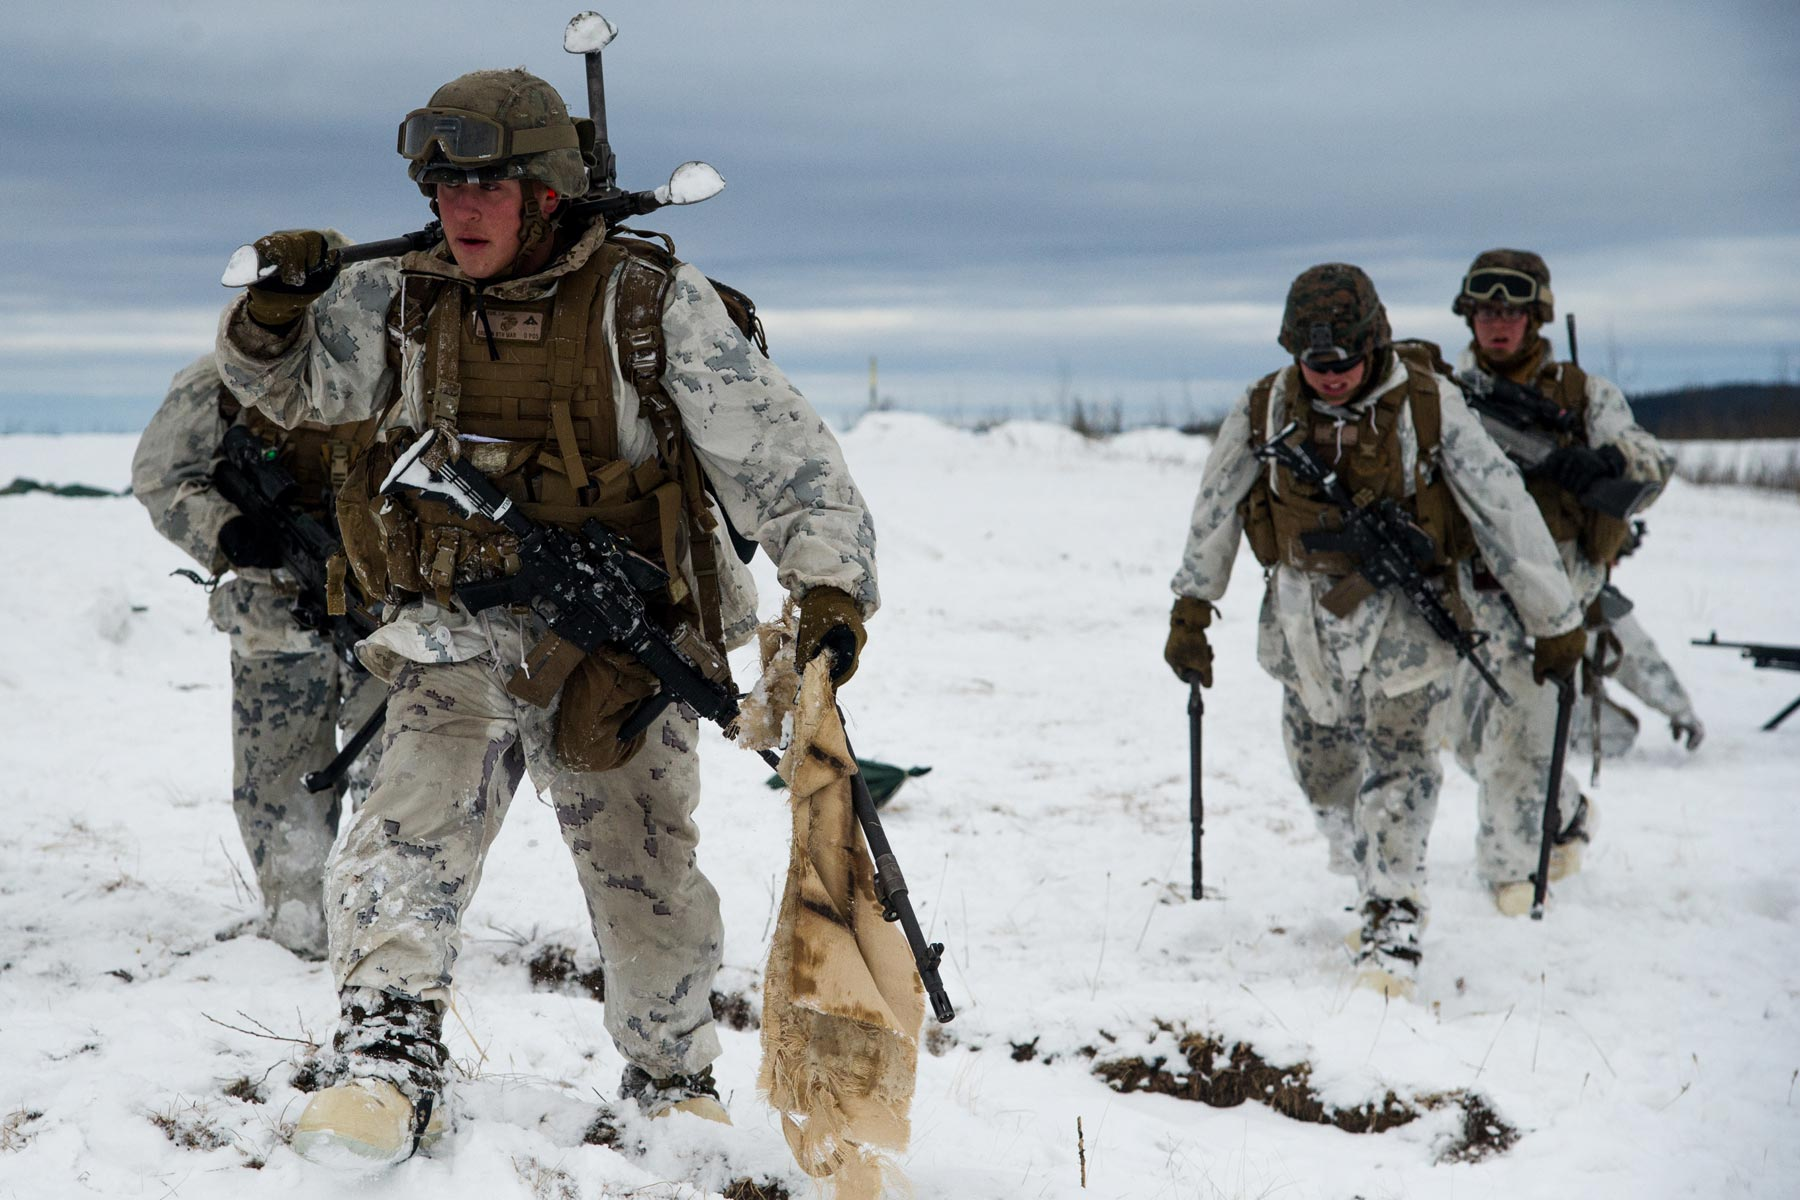 More Marines May Head to Alaska for Cold Weather Training: Senator